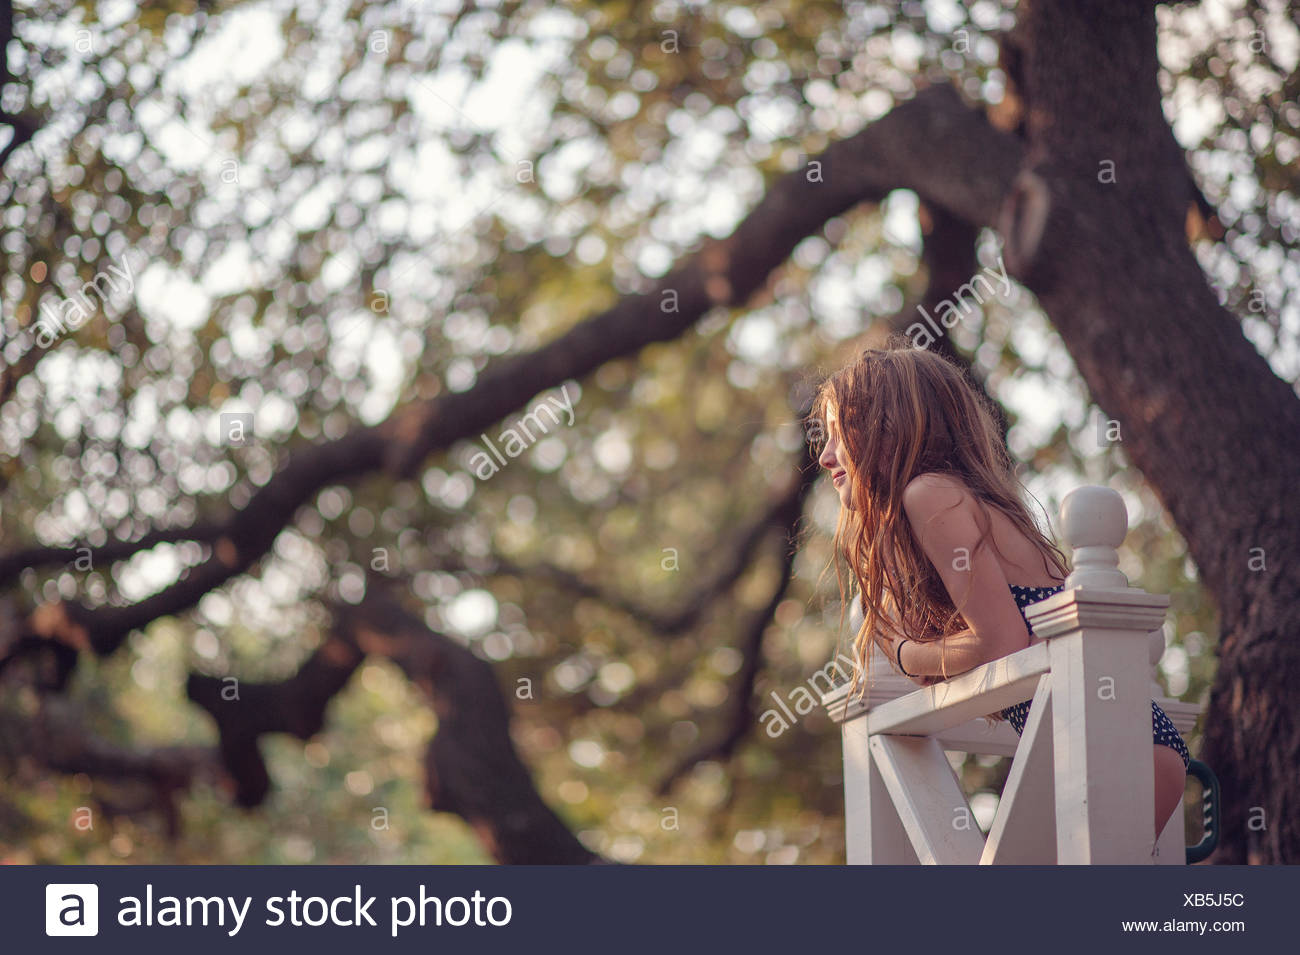 Girl leaning against wooden fence in backyard - Stock Image